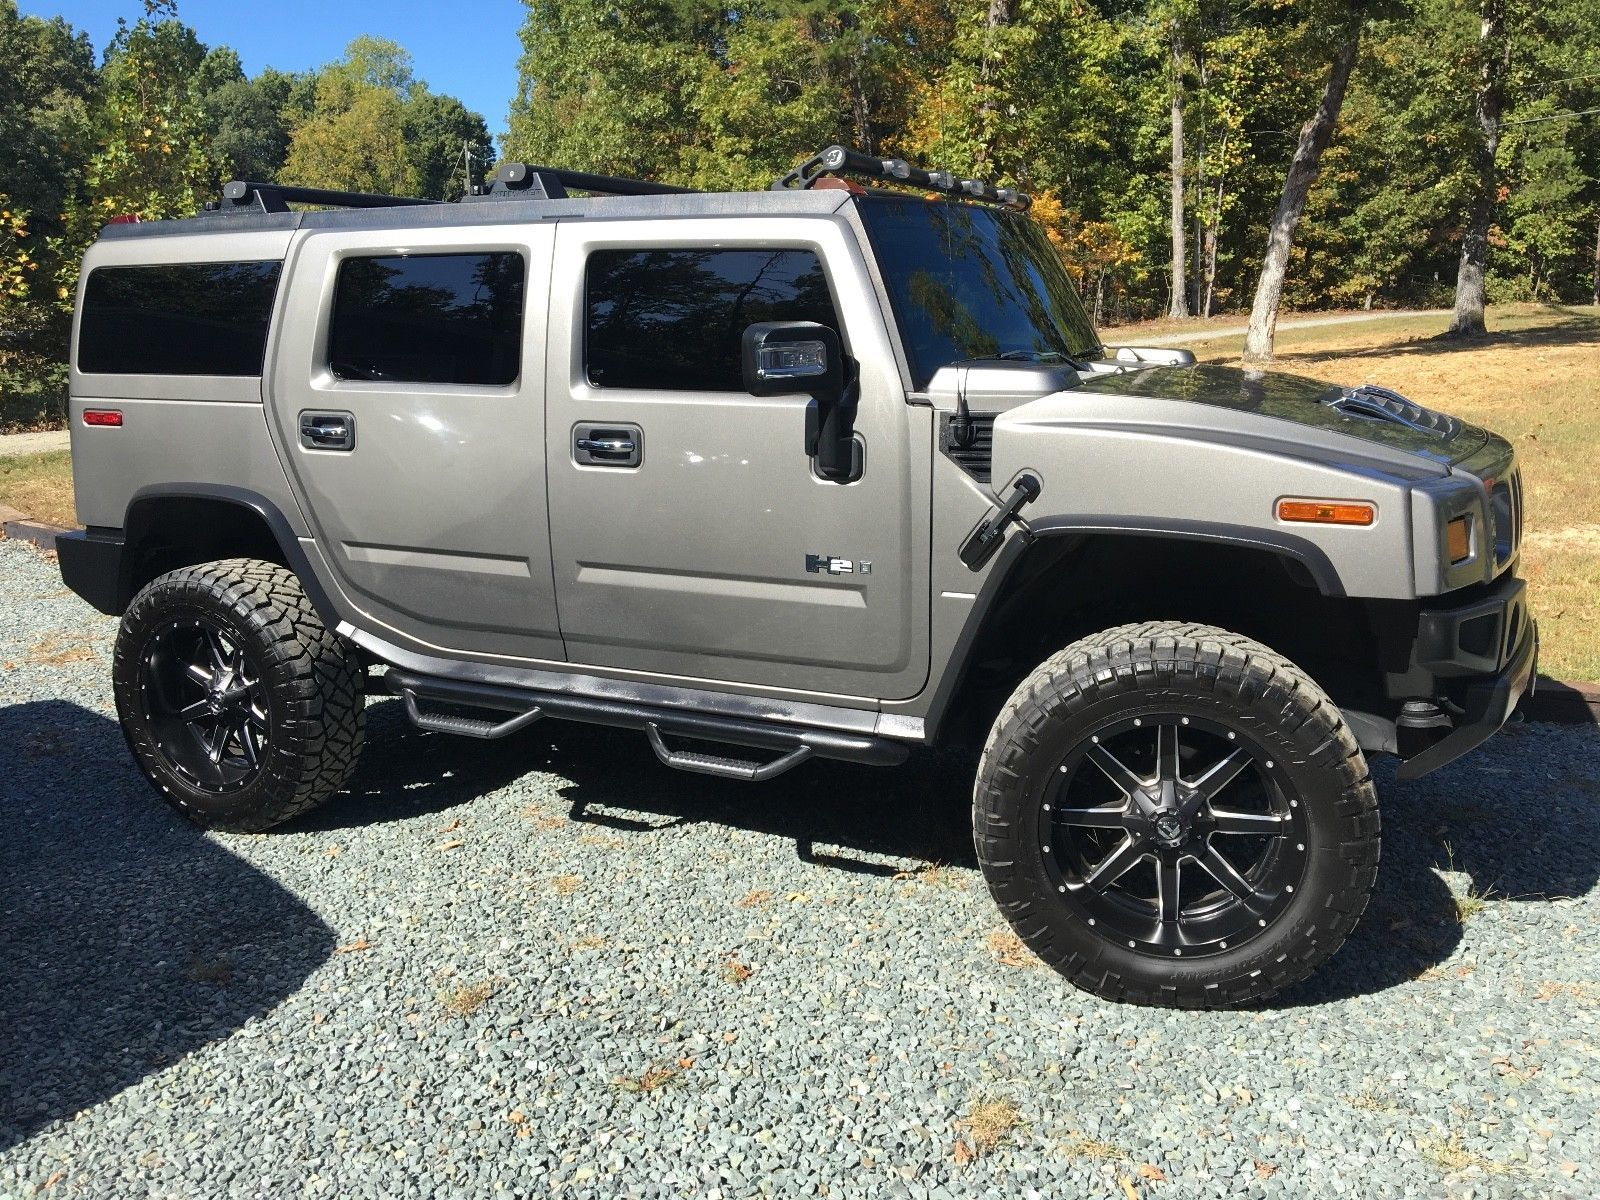 Cool Awesome 2008 Hummer H2 Luxury 2008 hummer H2 Luxury pkg